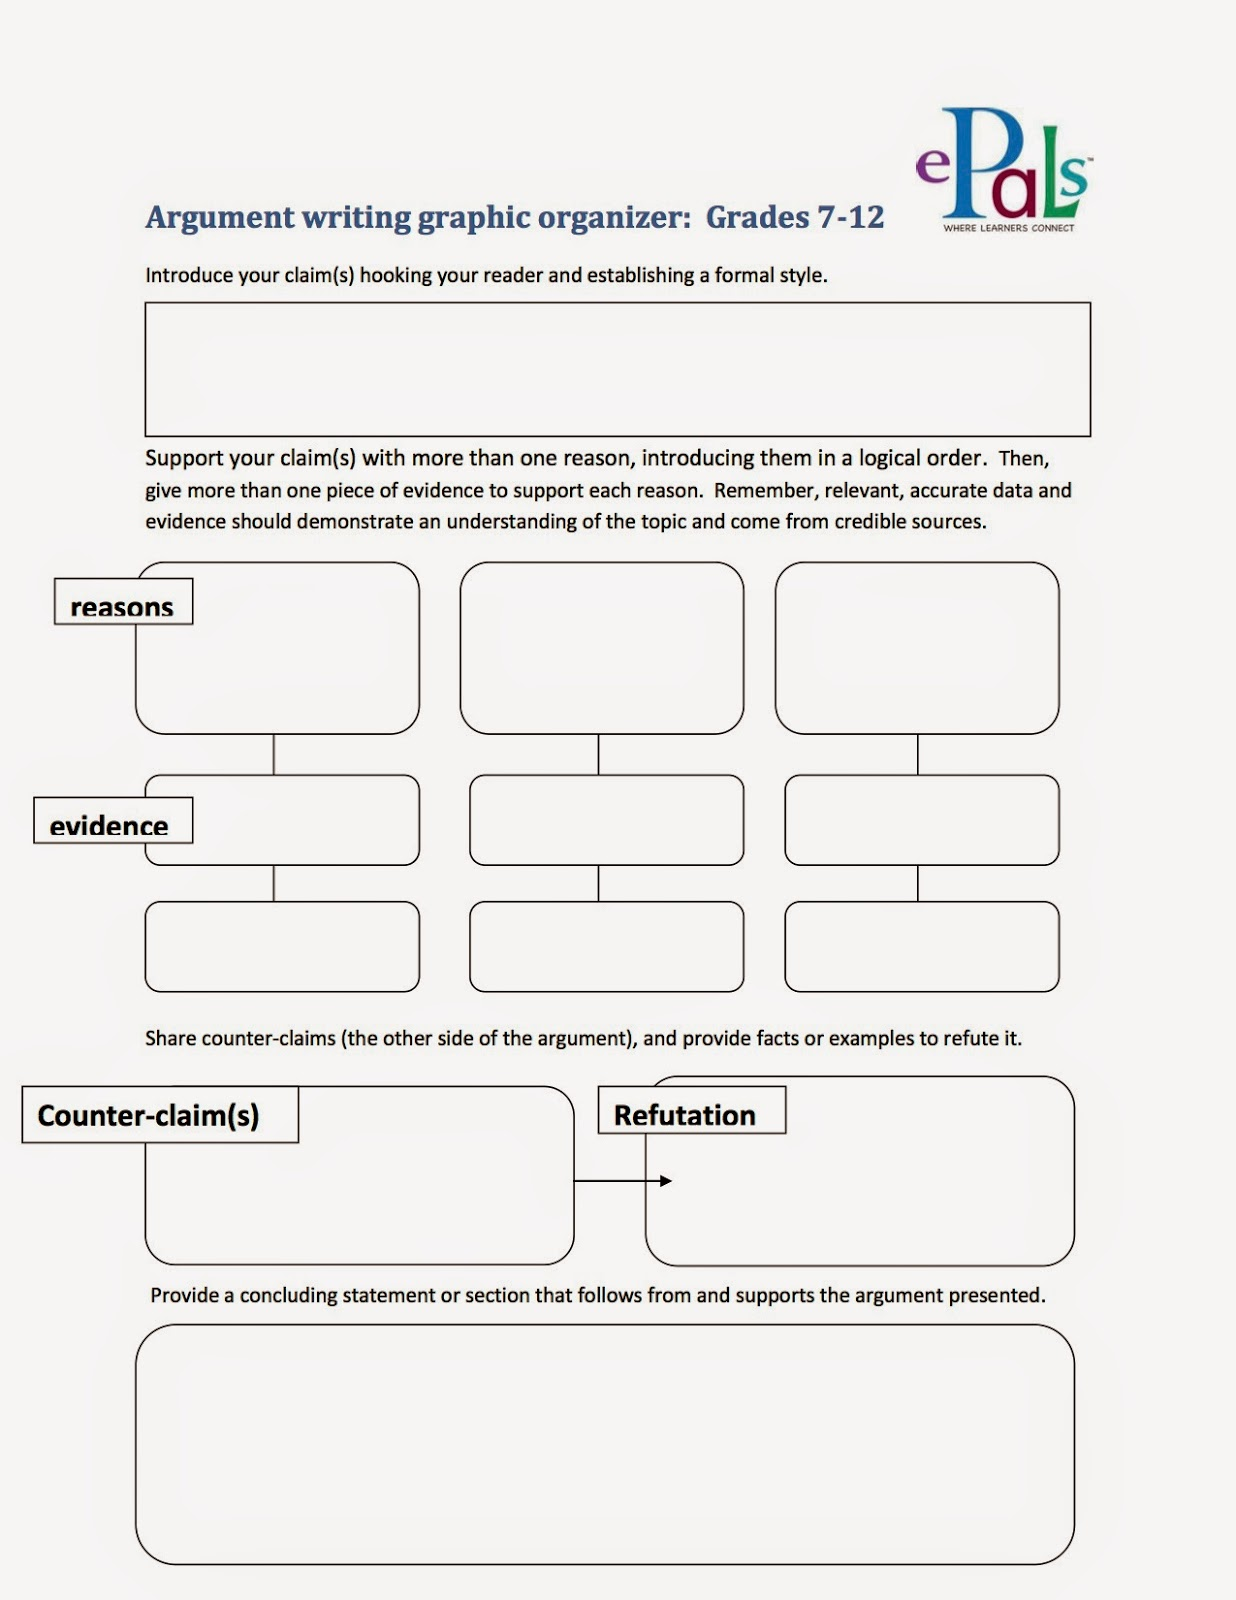 003 Argumentgraphicorganizer2bcopy Essay Example Argumentative Graphic Incredible Organizer Persuasive High School Pdf Common Core Full